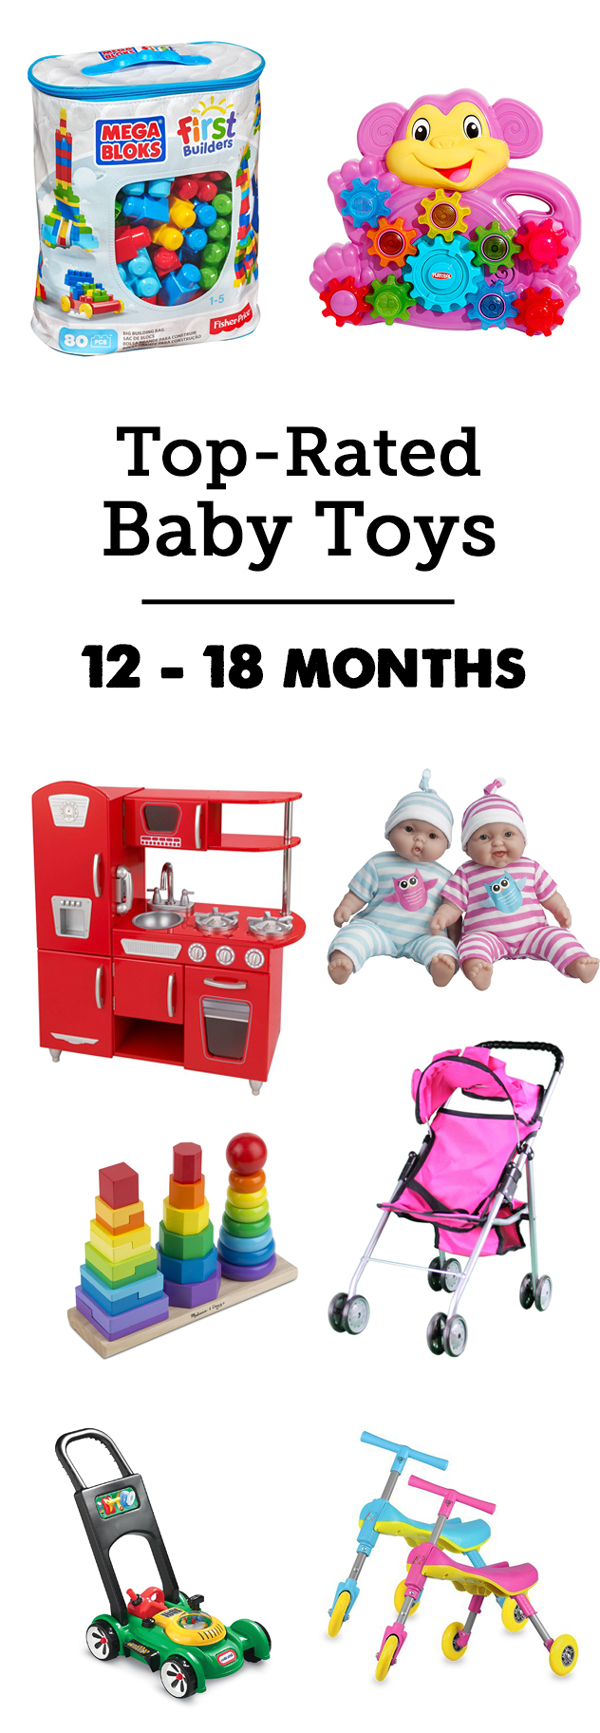 MPMK Toy Gift Guide: Best toys for babies & best toys for young toddlers 12 months to 18 months - part of a great list for that tricky 0 - 24 month age range with super helpful descriptions.